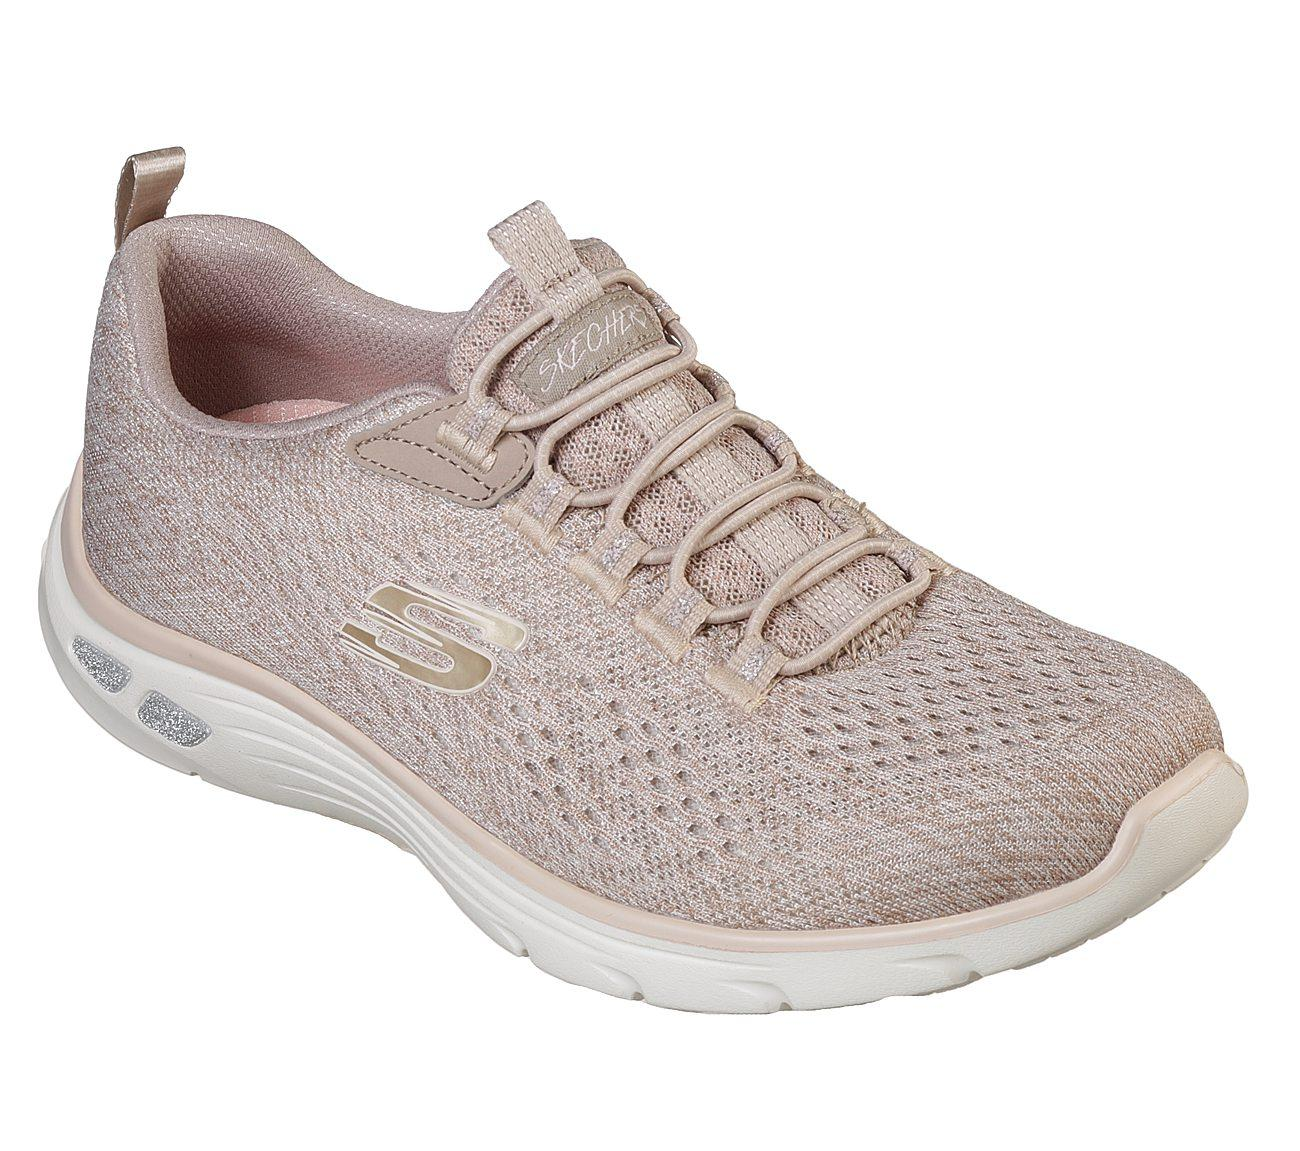 Skechers - Relaxed Fit  Empire D Lux - Lively Wind Sepatu Olahraga Sneakers  Wanita e1ee303f84